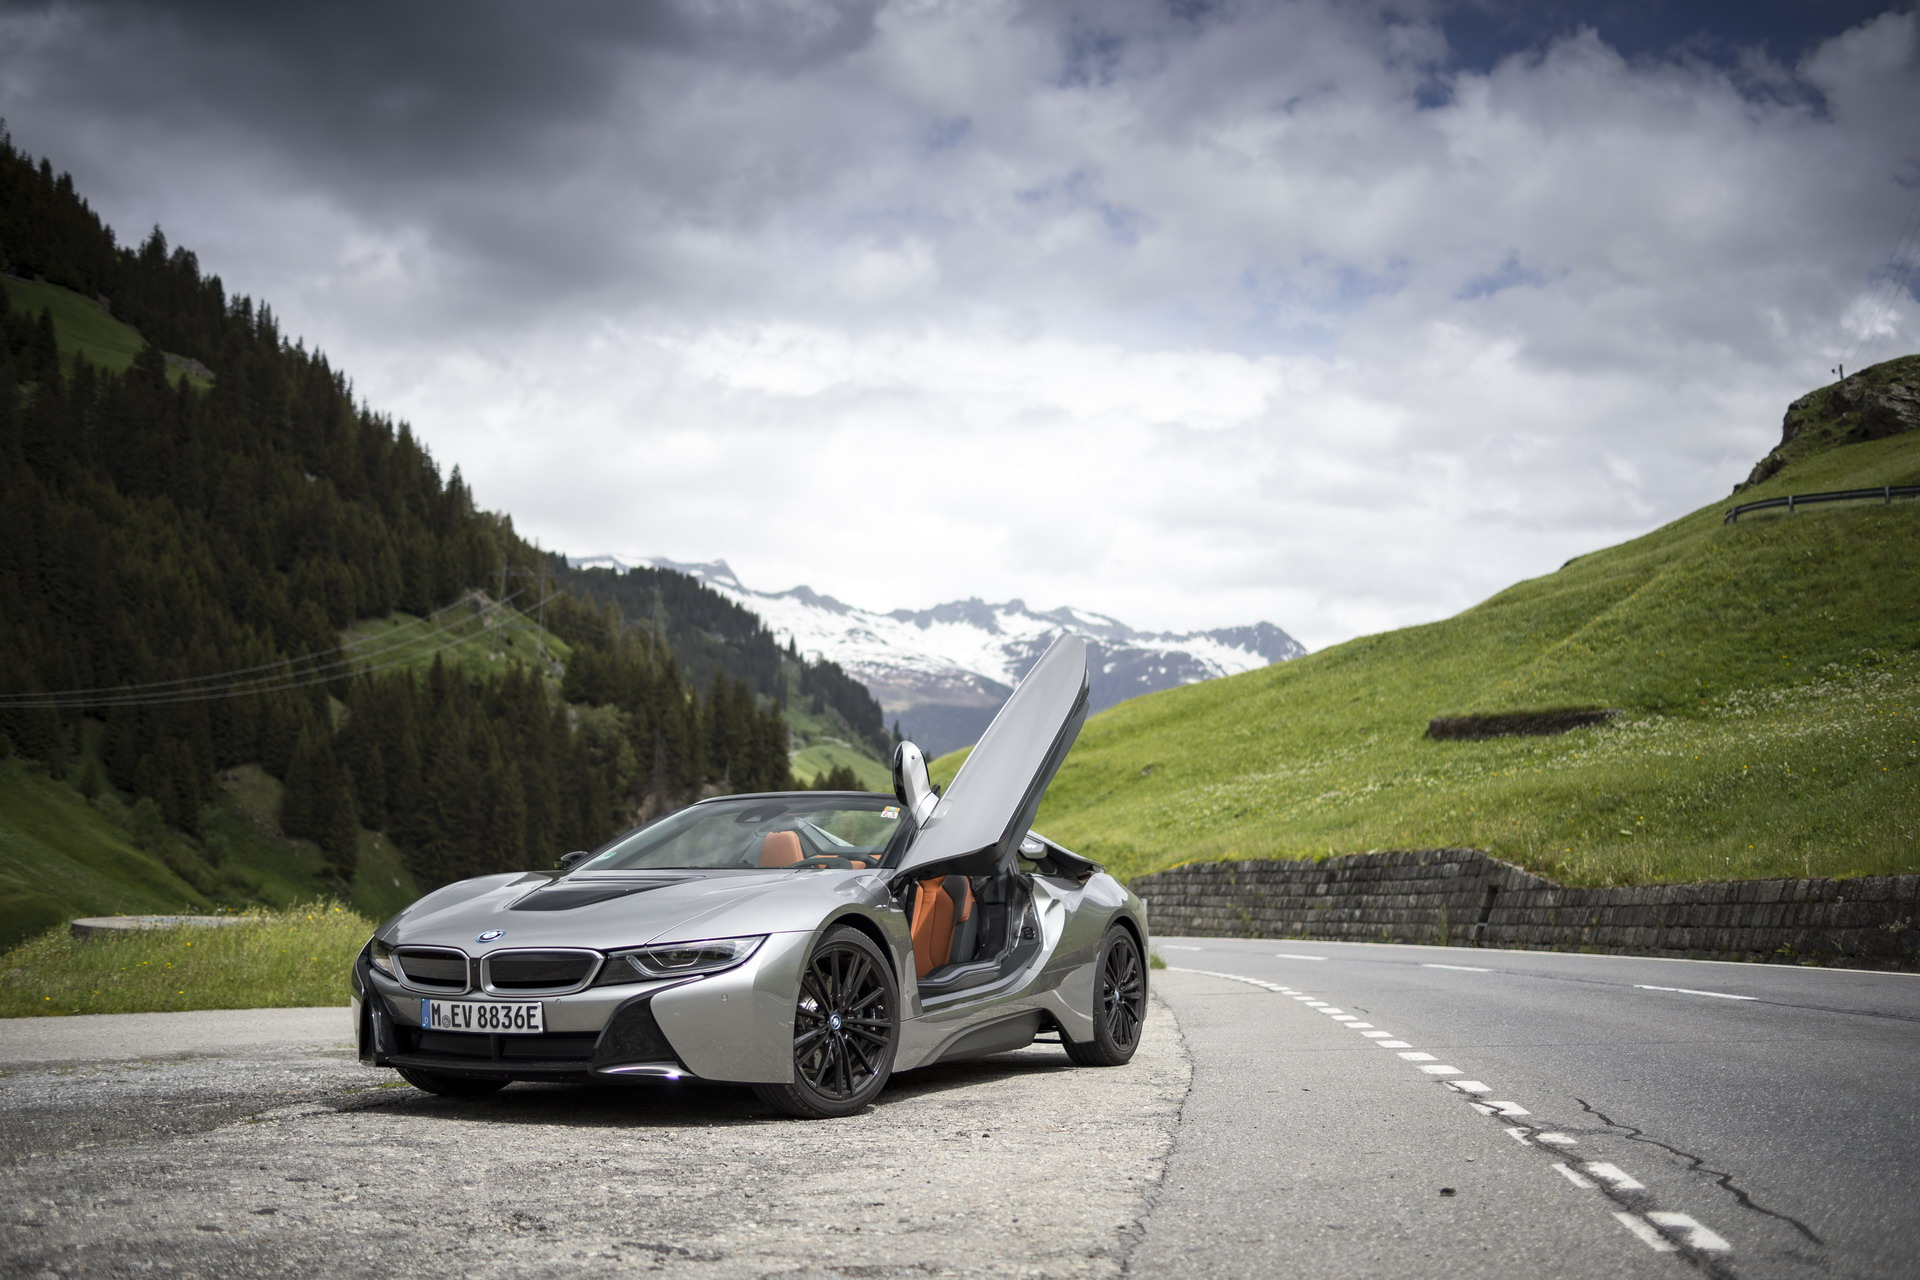 The BMW i8 Roadster I15 121